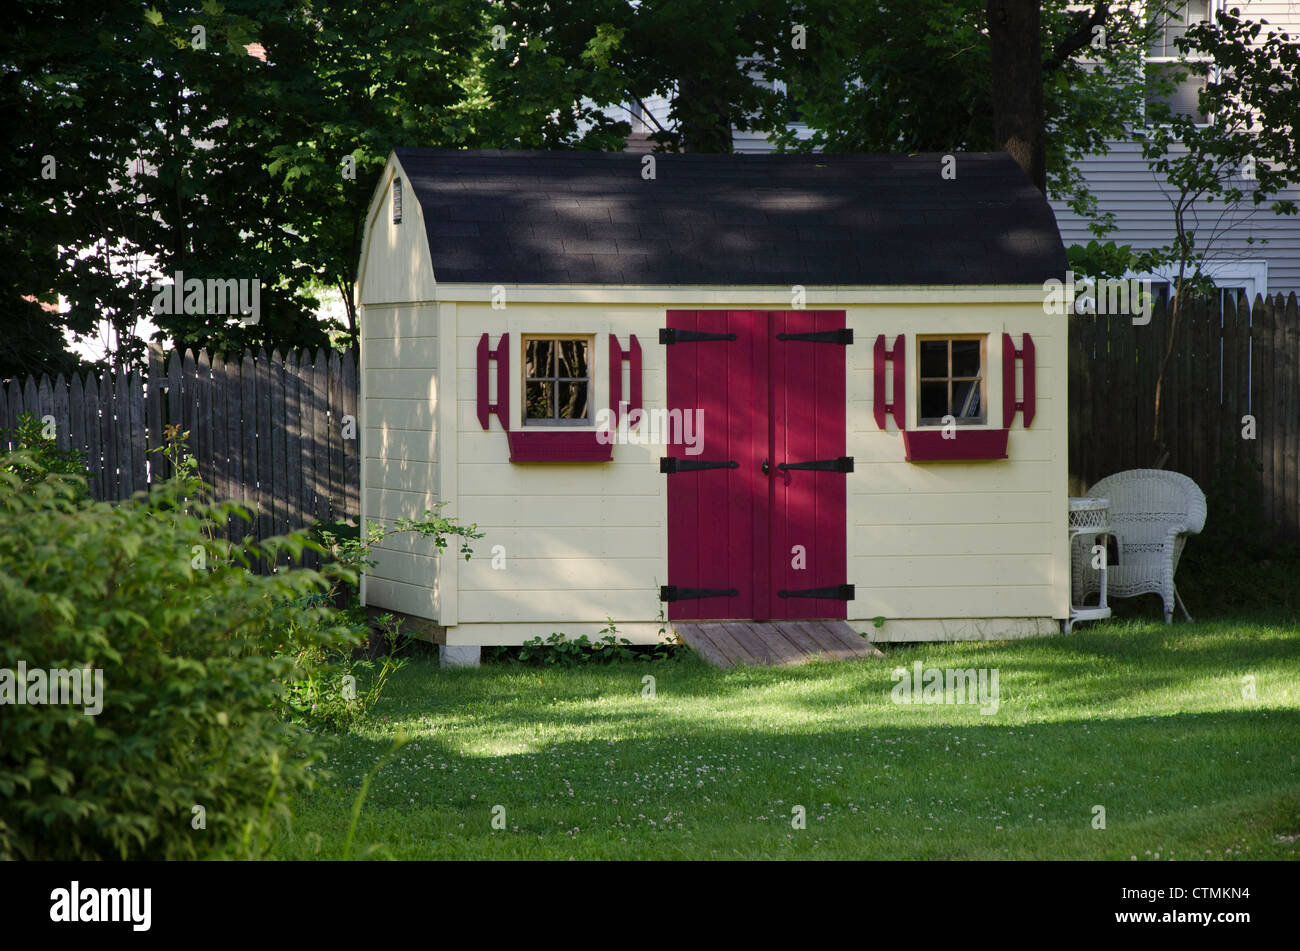 Cute Garden Shed, Portland Maine   Stock Image